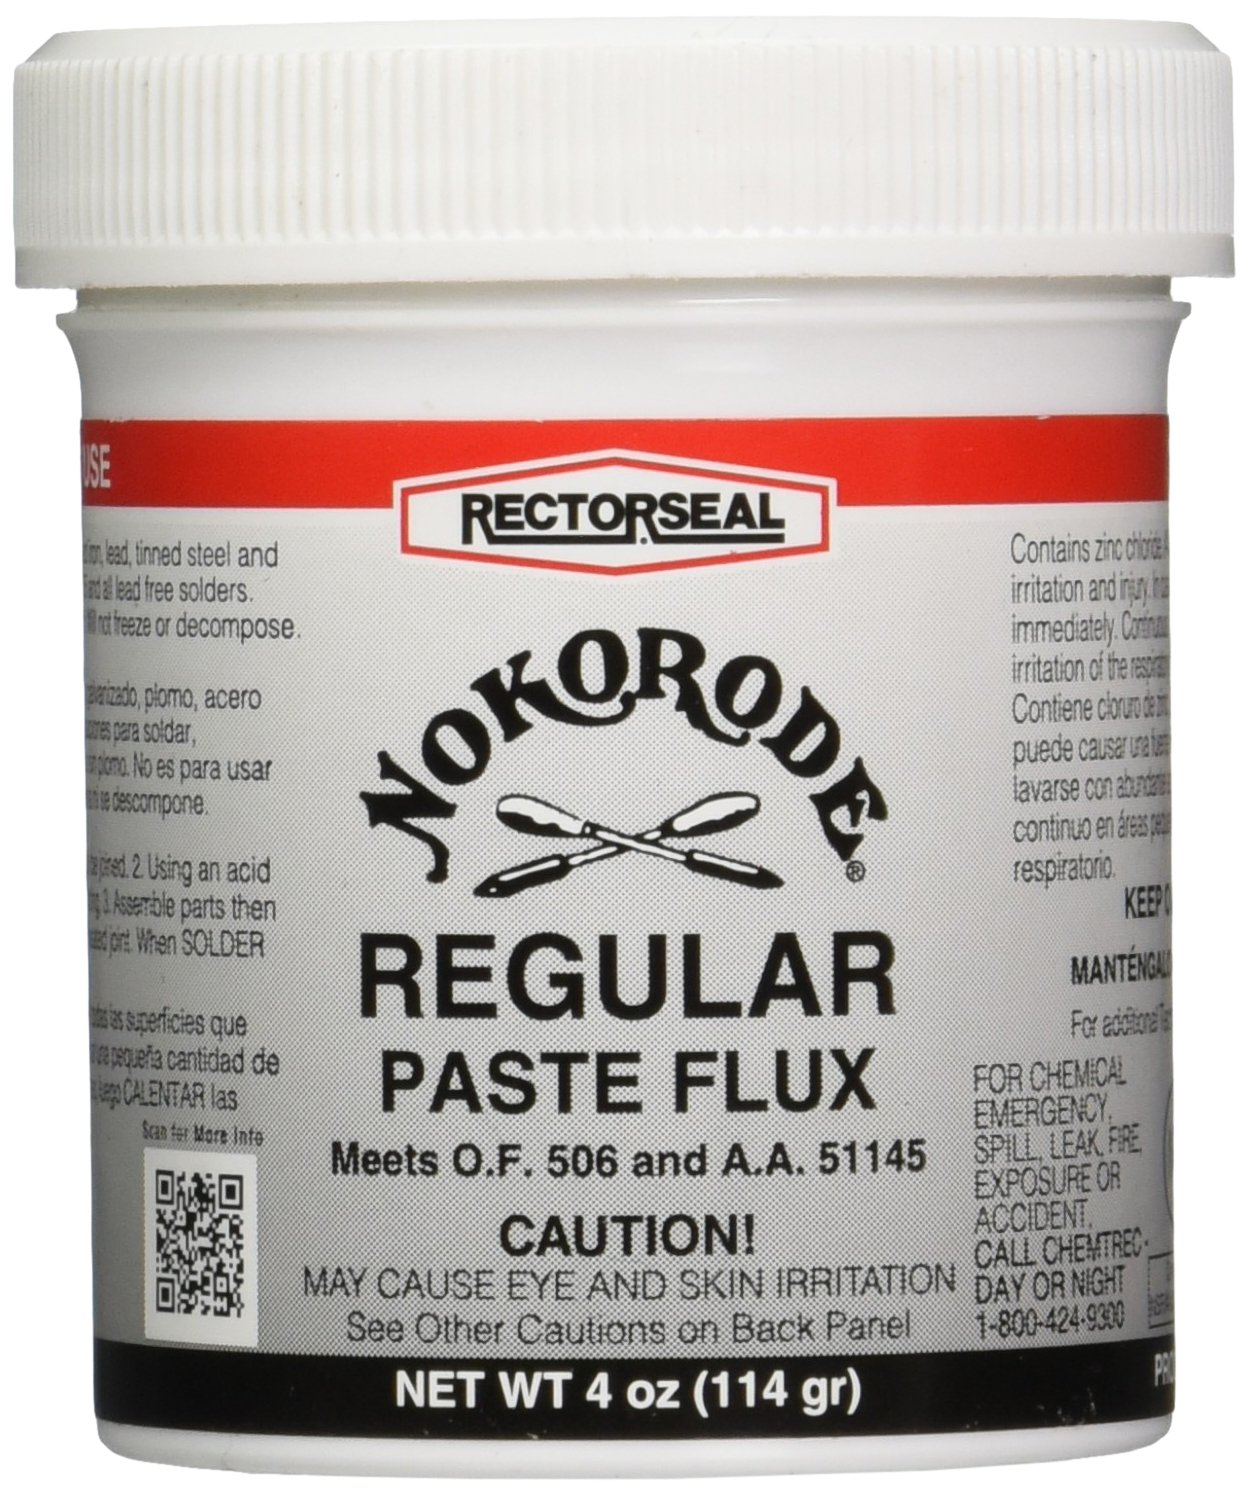 Rectorseal 14010 4-Ounce Nokorode Regular Paste Flux product image